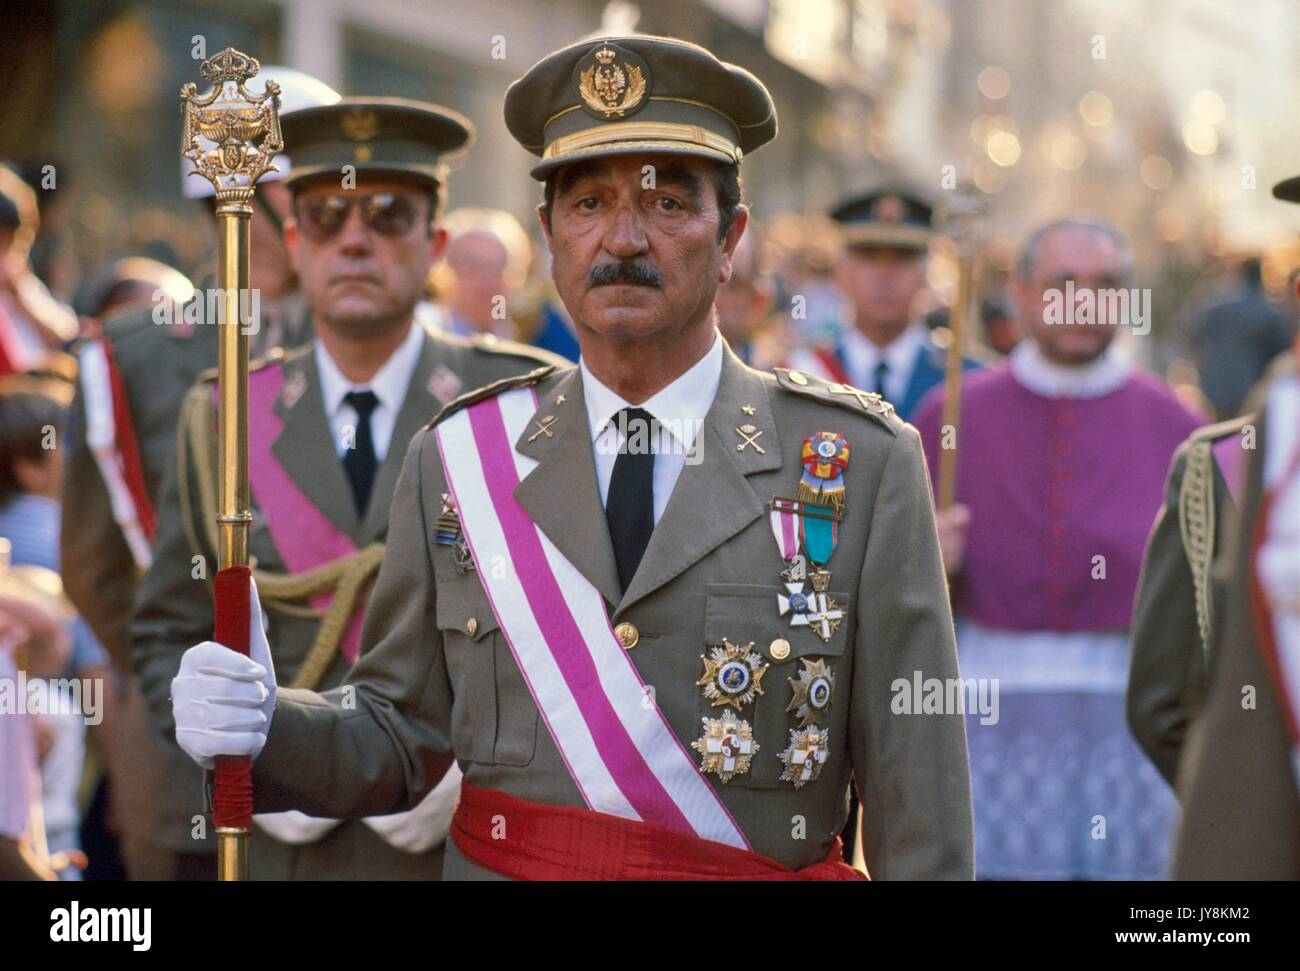 Spain, army officers during the celebrations of the Holy Week of Easter in Seville - Stock Image